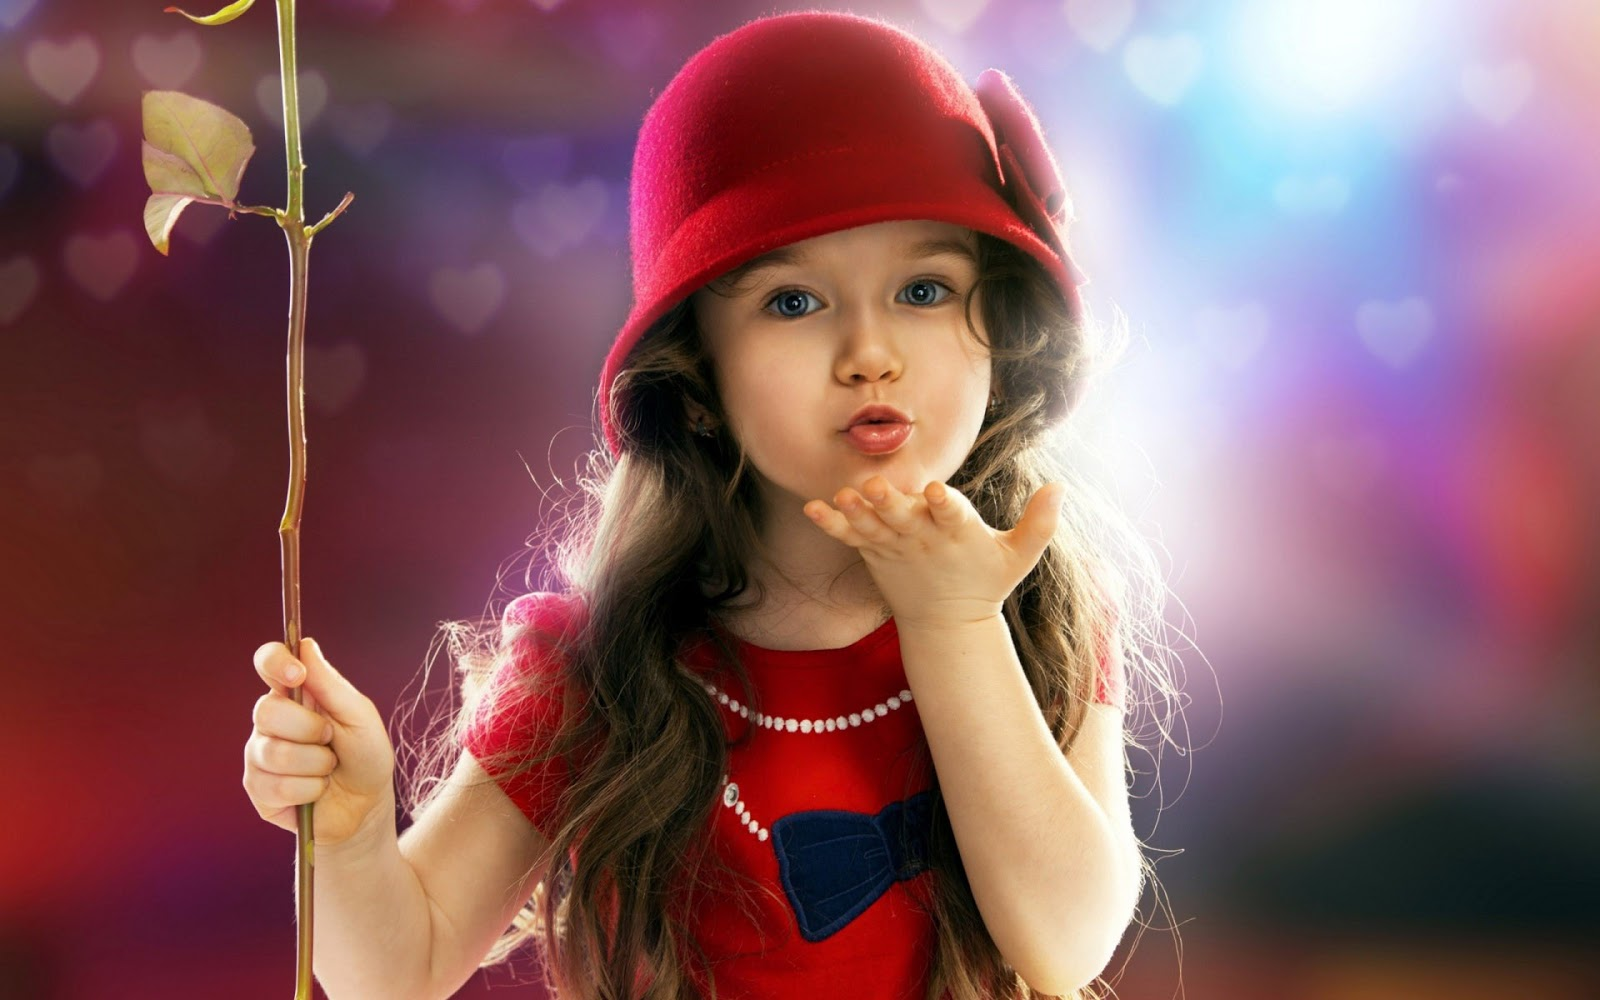 nice cute baby images - hd wallpapers images